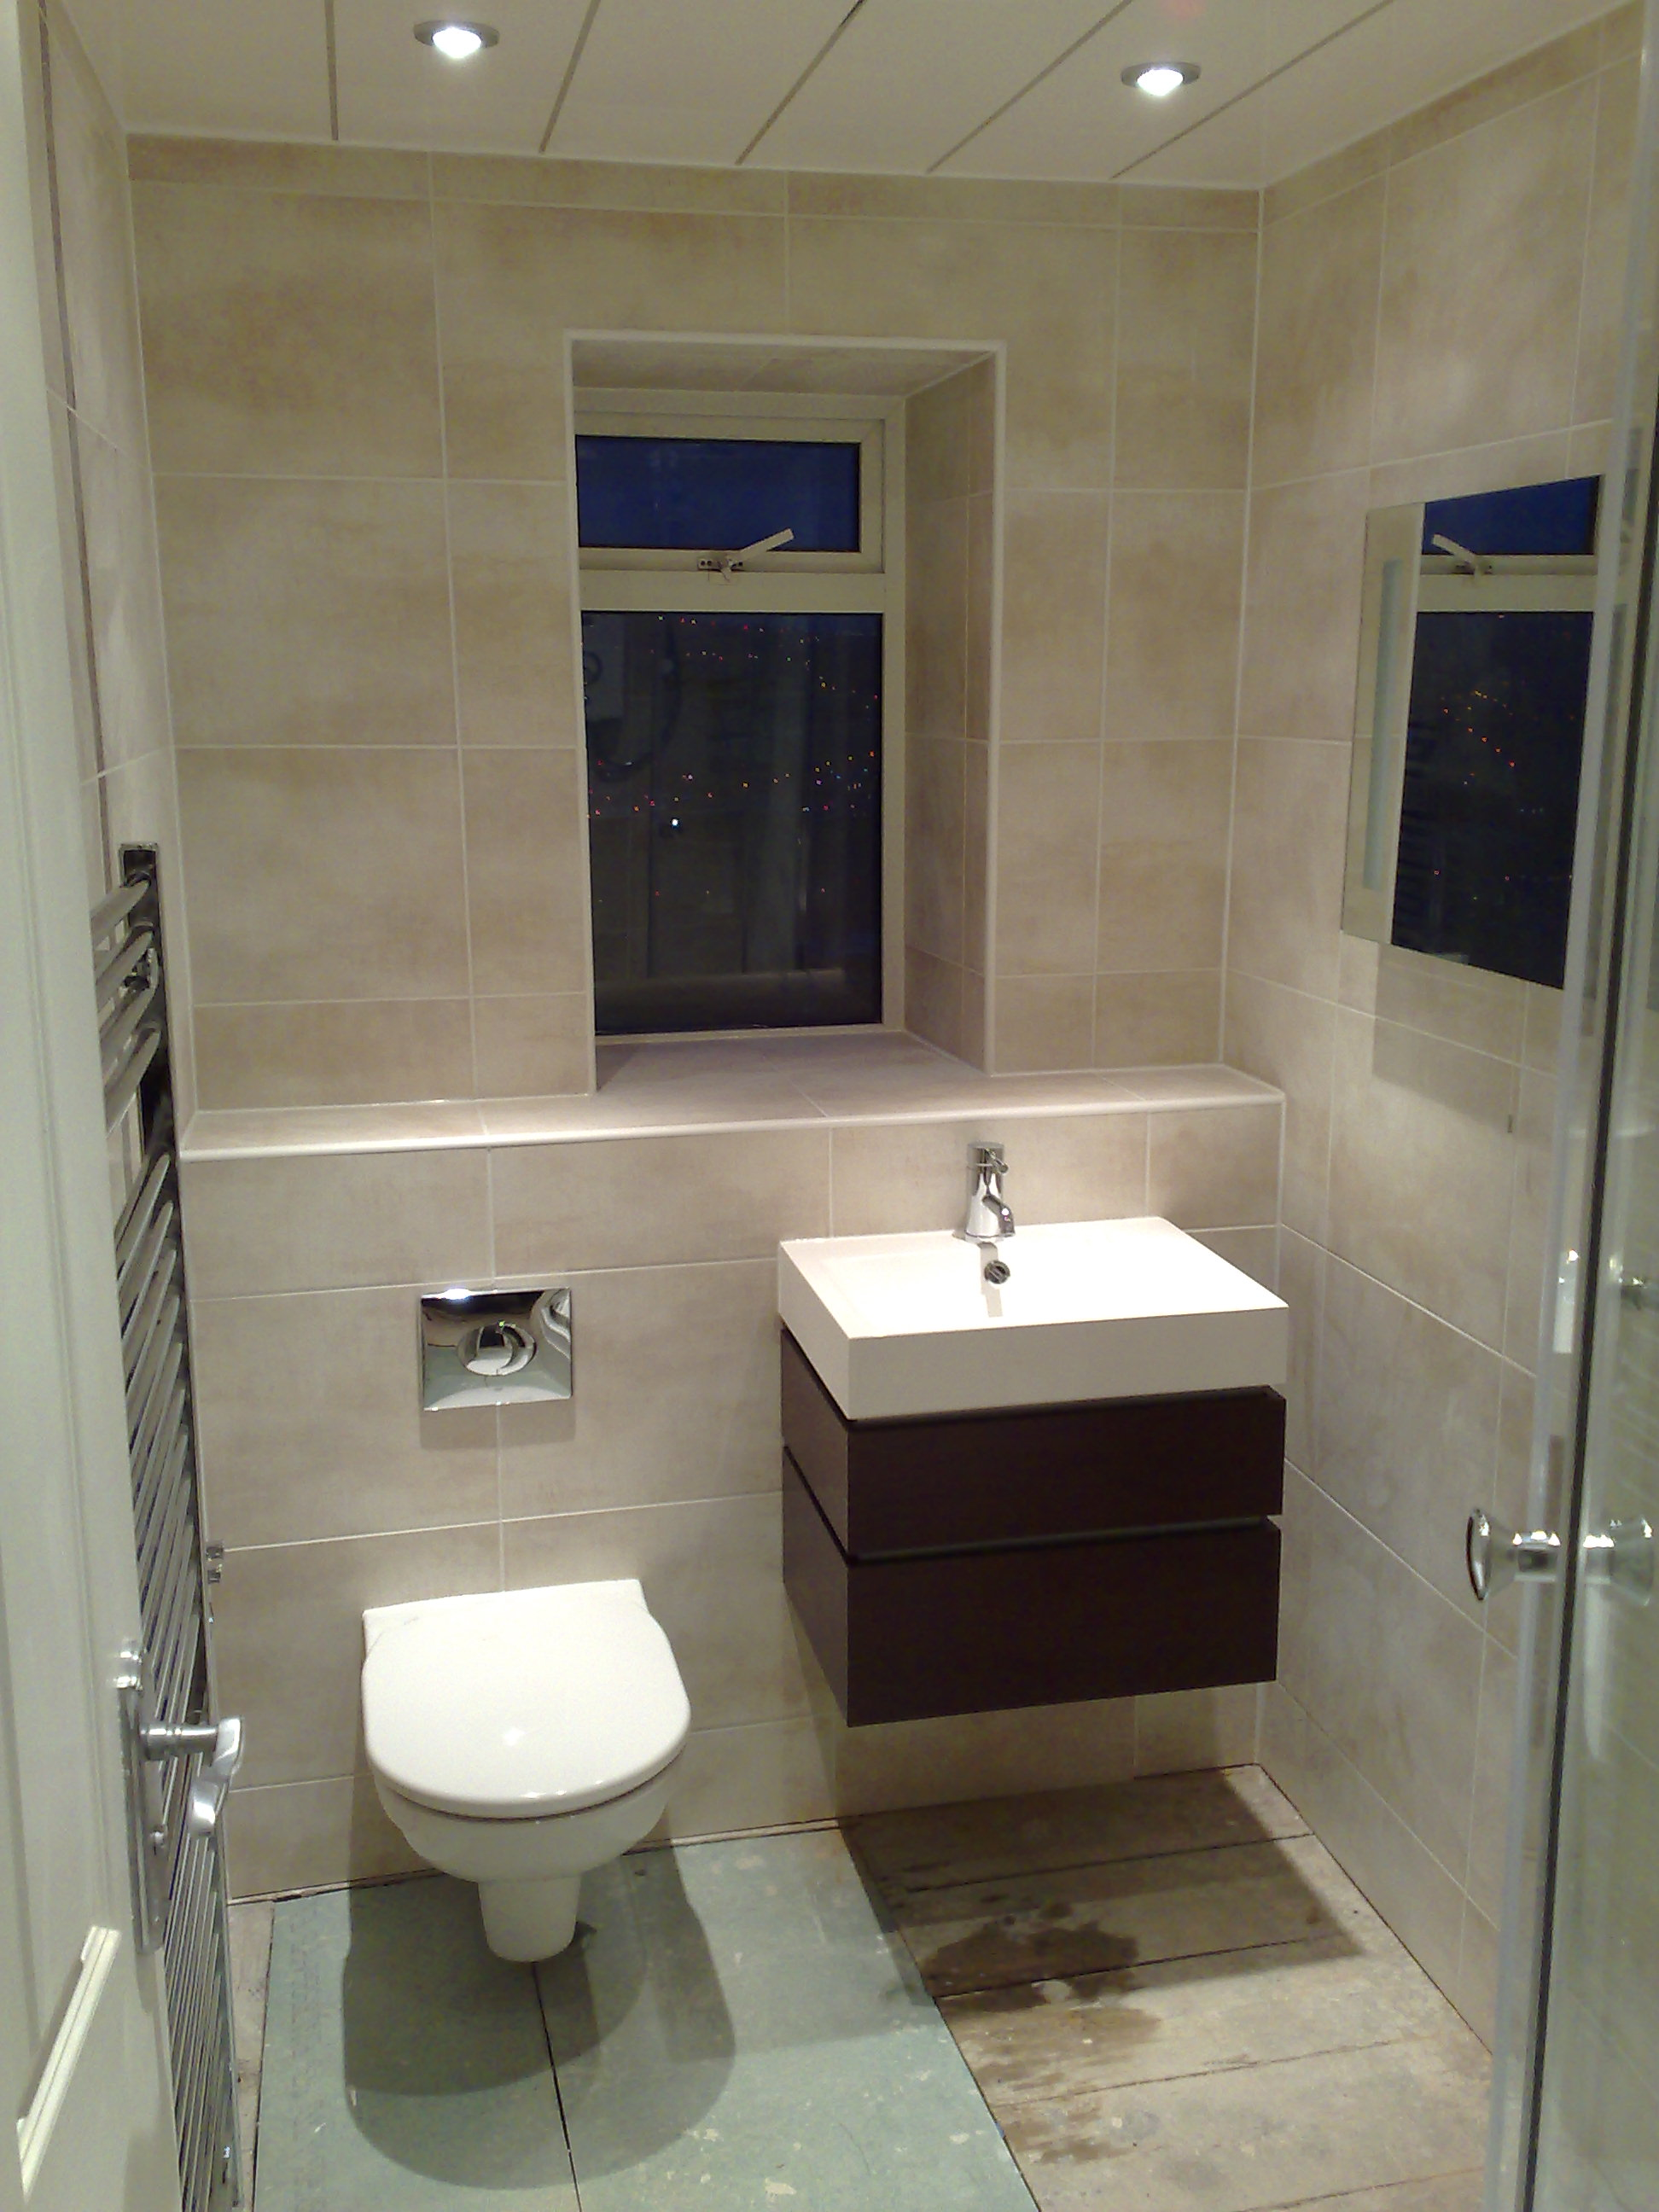 Wall hung bathroom suites - Shower Room Fitted With Concealed Toilet C